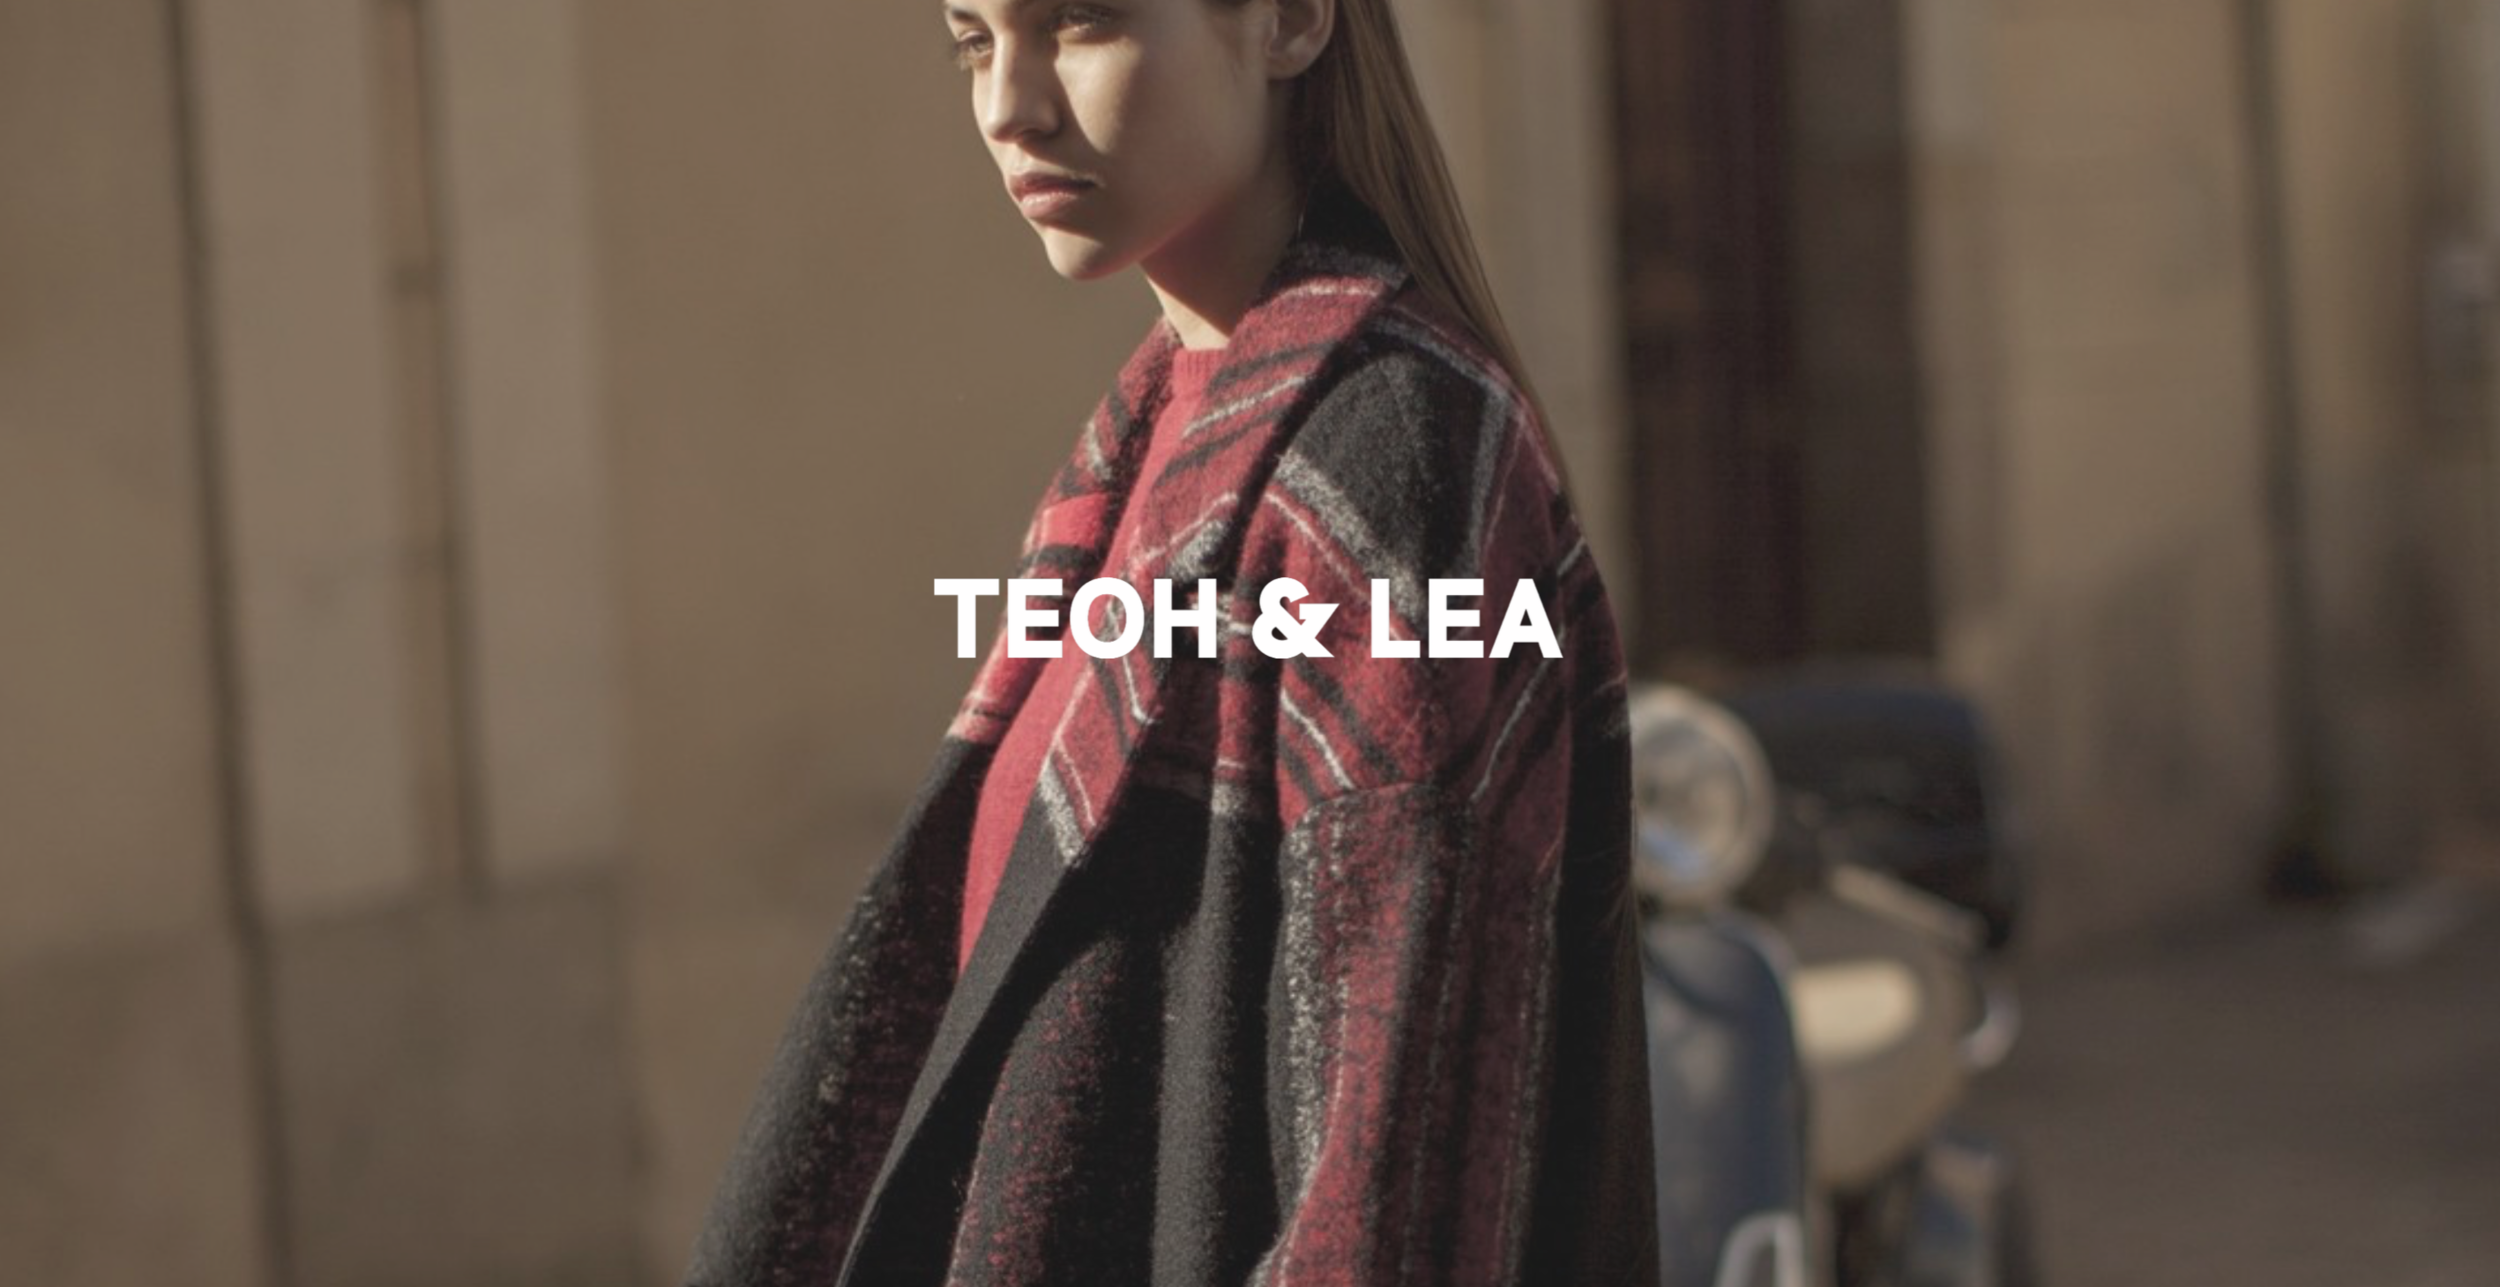 Teoh & Lea  The up-and-coming design duo, Teoh & Lea, met at a Spanish music festival in 2014. A short time after, the couple began collaborating to design their casual-chic eponymous label. The Spanish label reflects feminine, confident and relaxed attitude. Smart dressing with and easy approach.